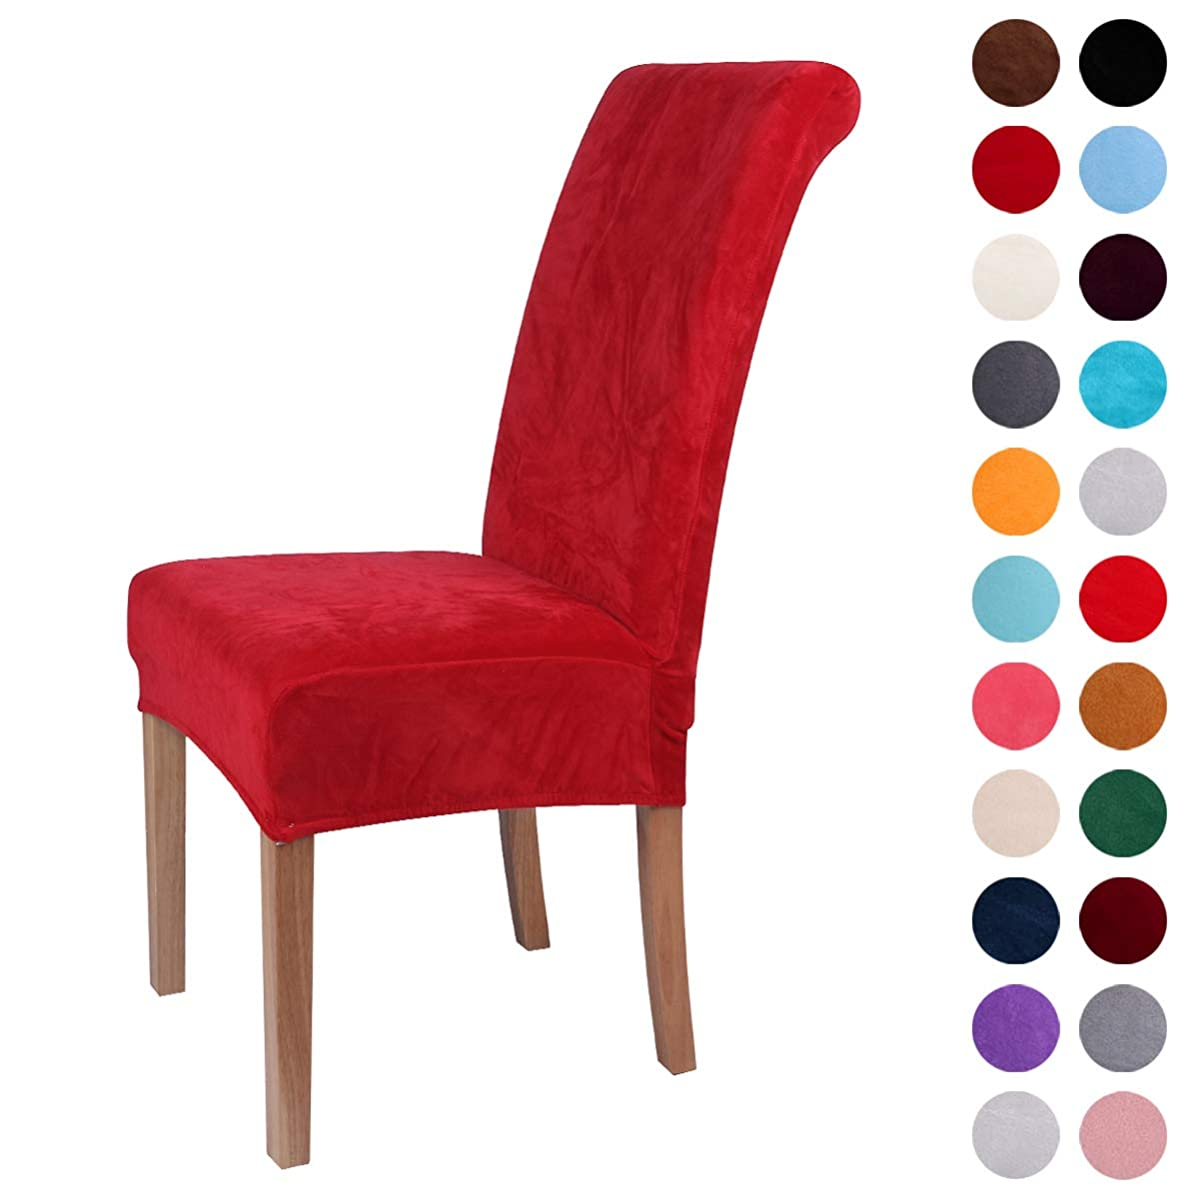 Colorxy Velvet Spandex Fabric Stretch Dining Room Chair Slipcovers Home Decor Set of 4, Red